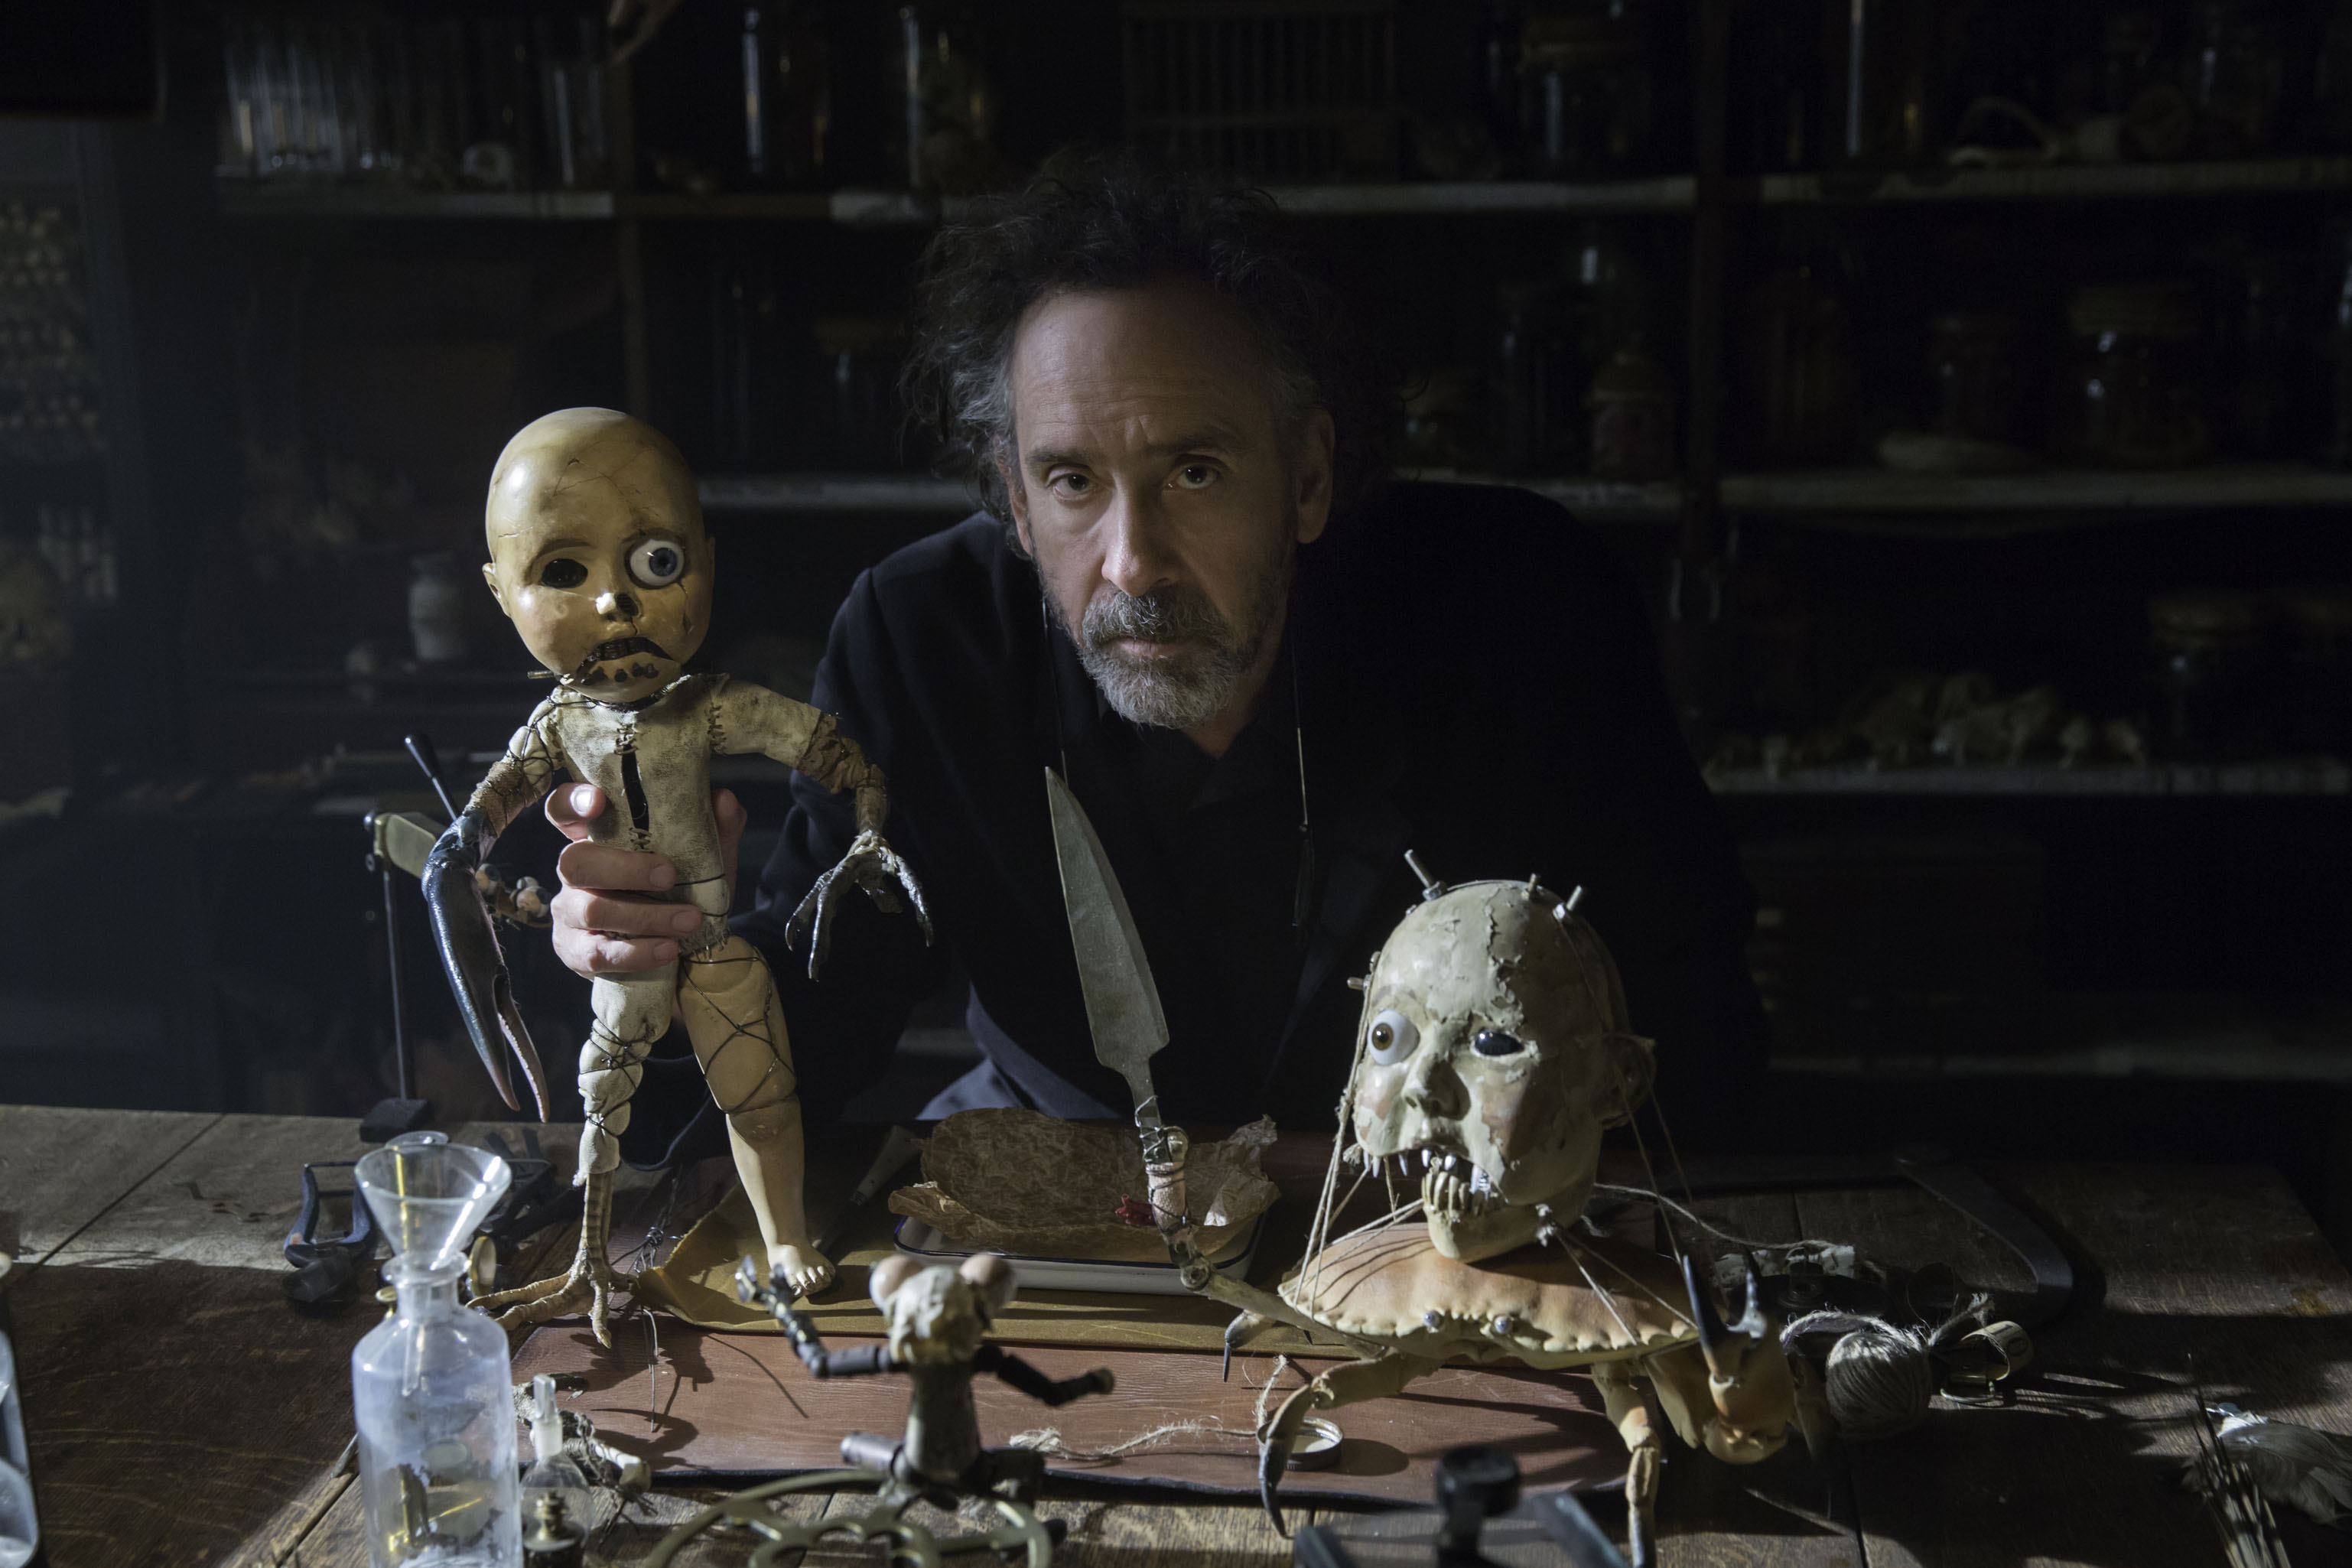 DF-03143_R - Director Tim Burton on the set of MISS PEREGRINE'S HOME FOR PECULIAR CHILDREN. Photo Credit: Leah Gallo.